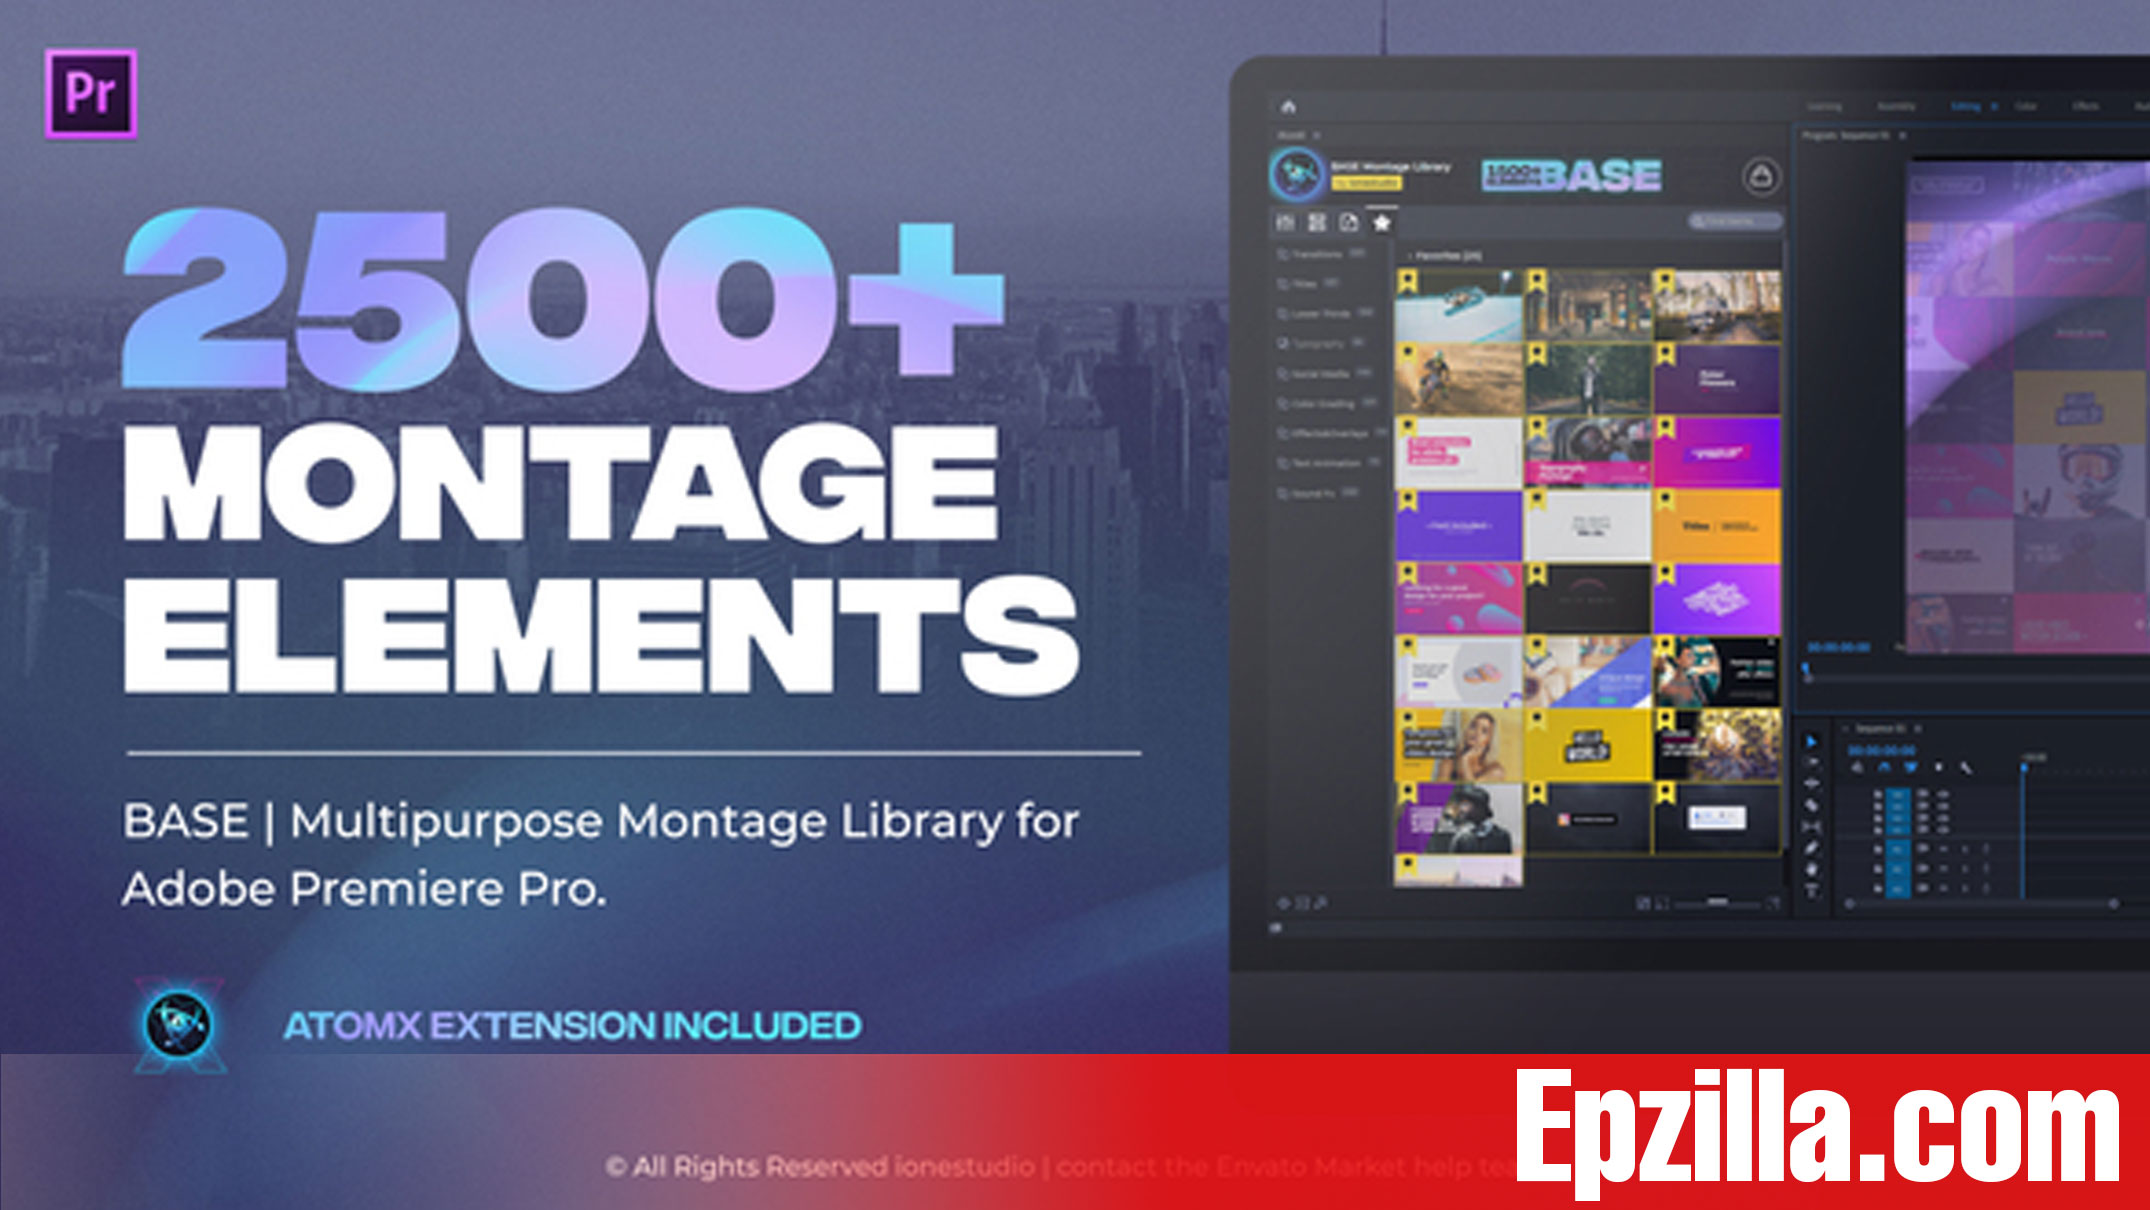 Videohive AtomX BASE Transitions and Motion Graphics for Premiere Pro 29733181 Free Download Epzilla.com